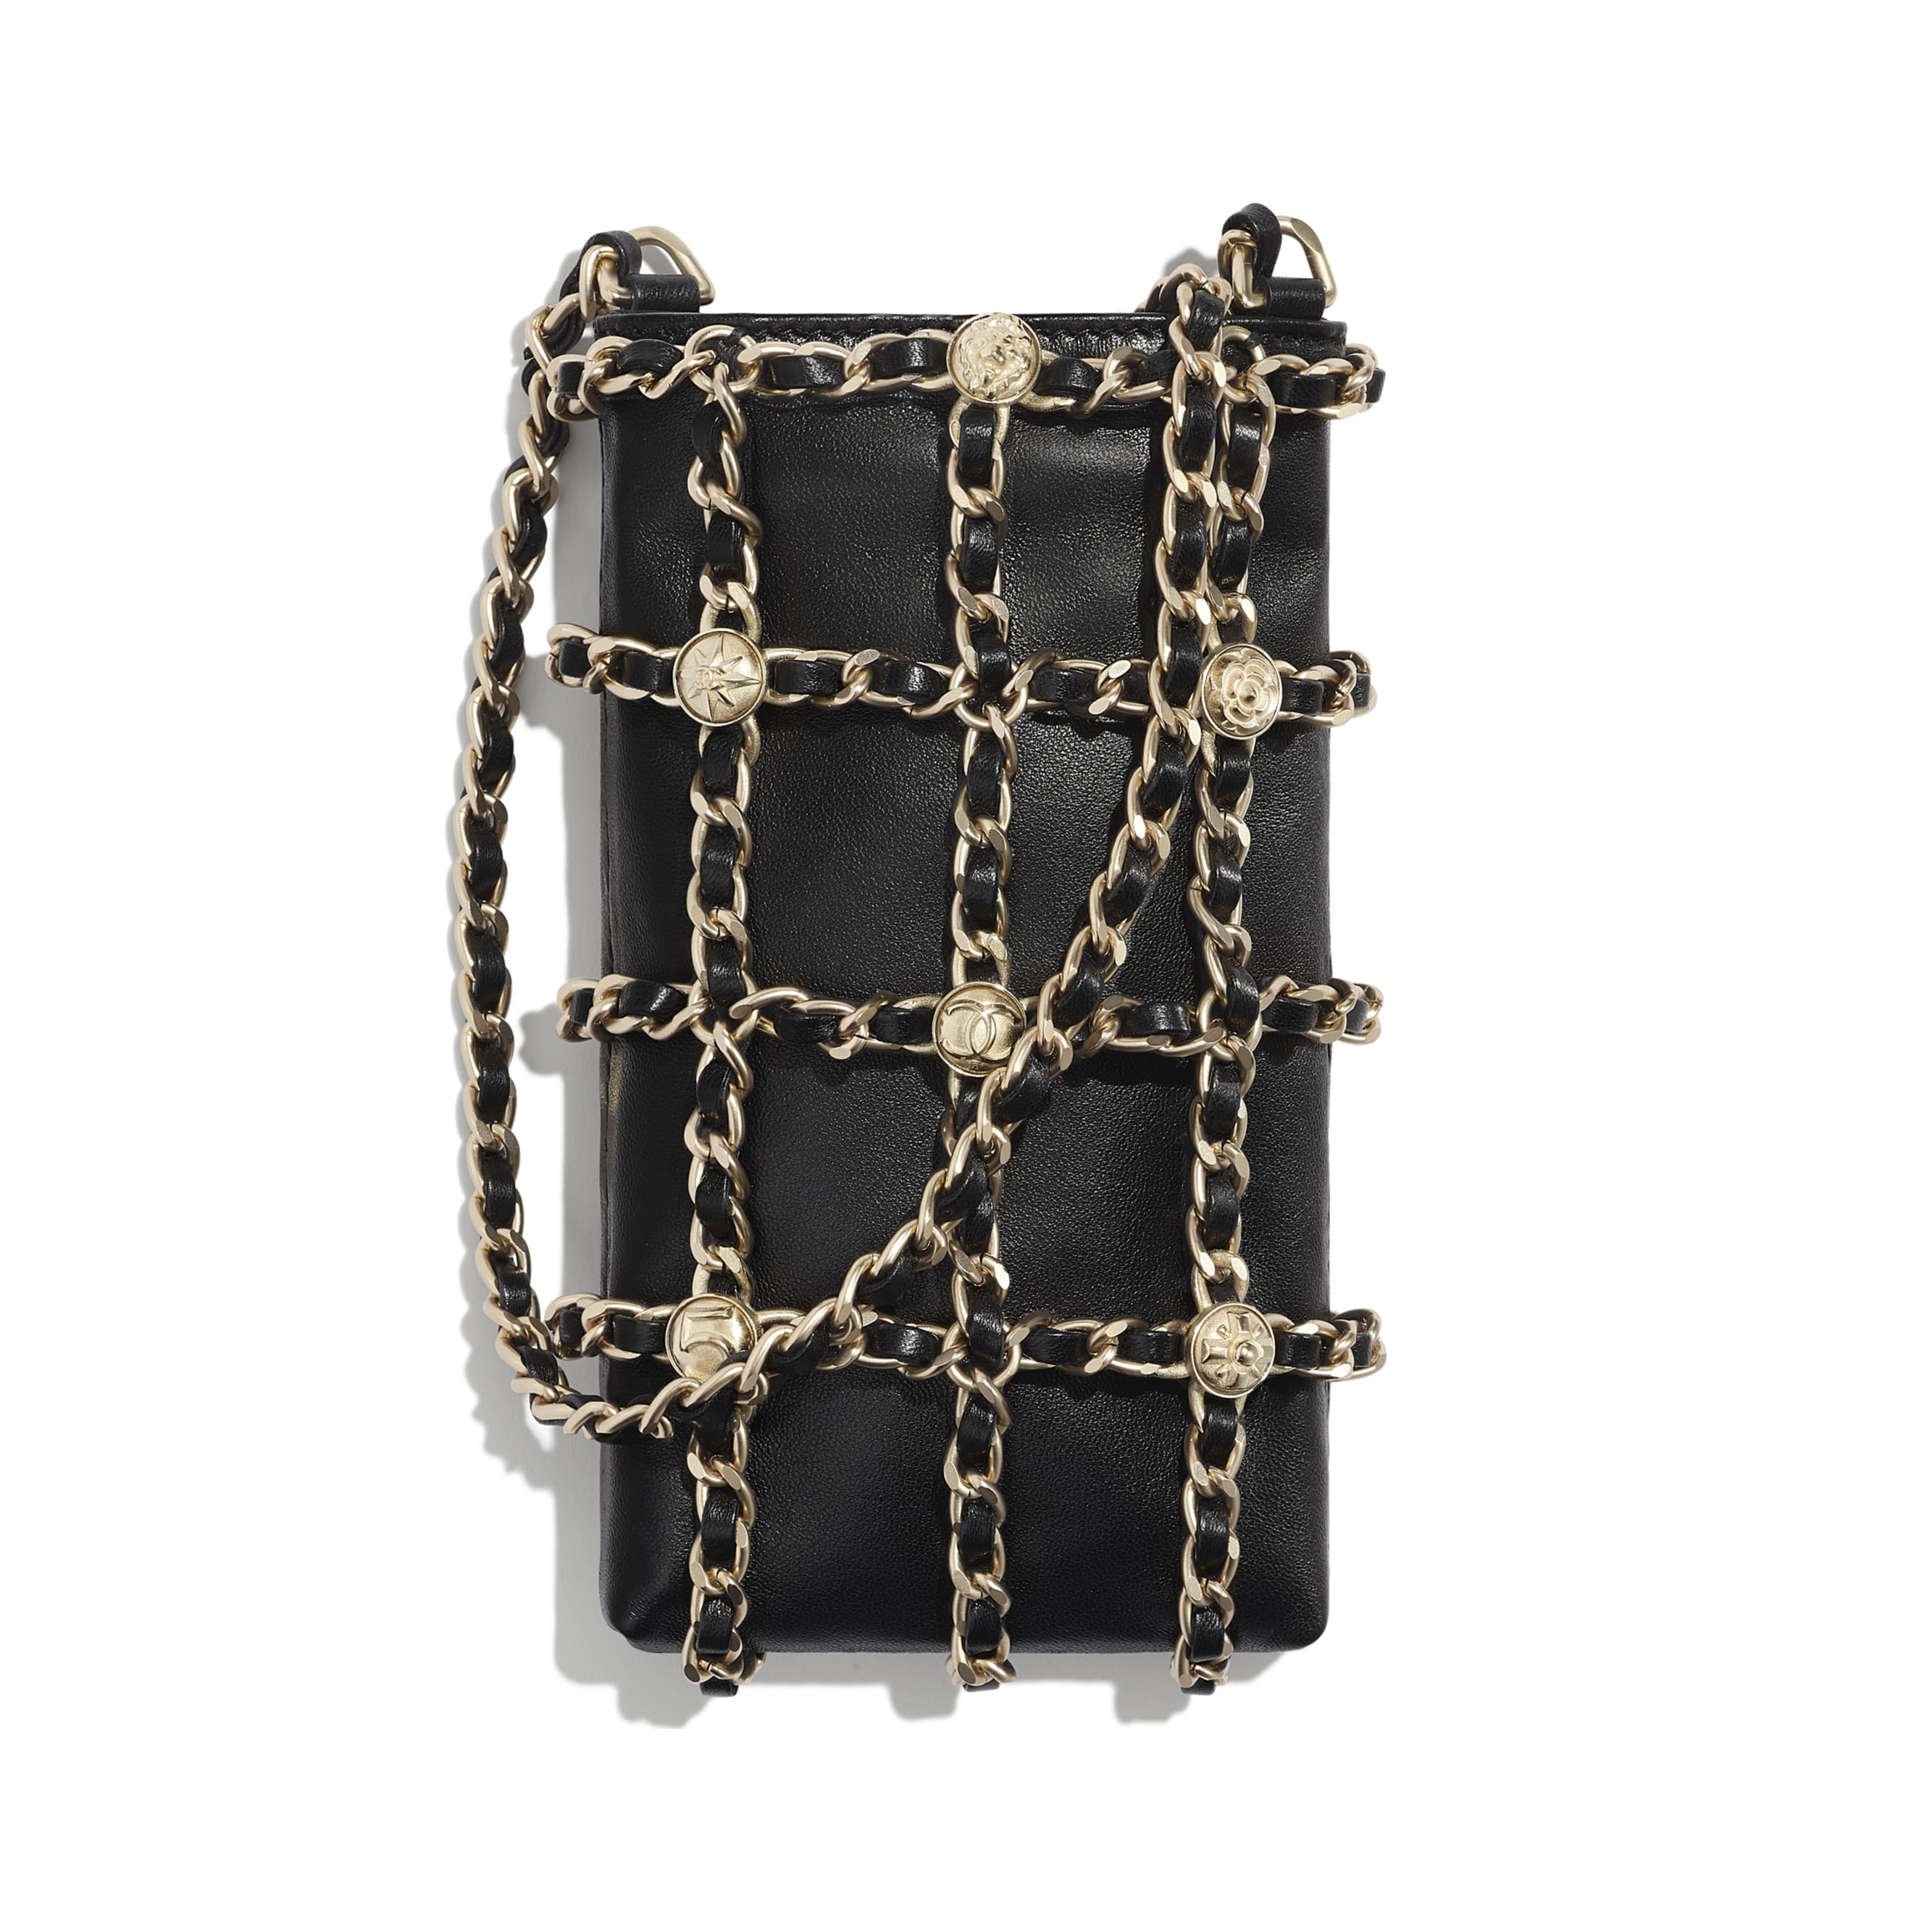 Clutch With Chain - Black - Lambskin, Studs & Gold-Tone Metal - Default view - see standard sized version